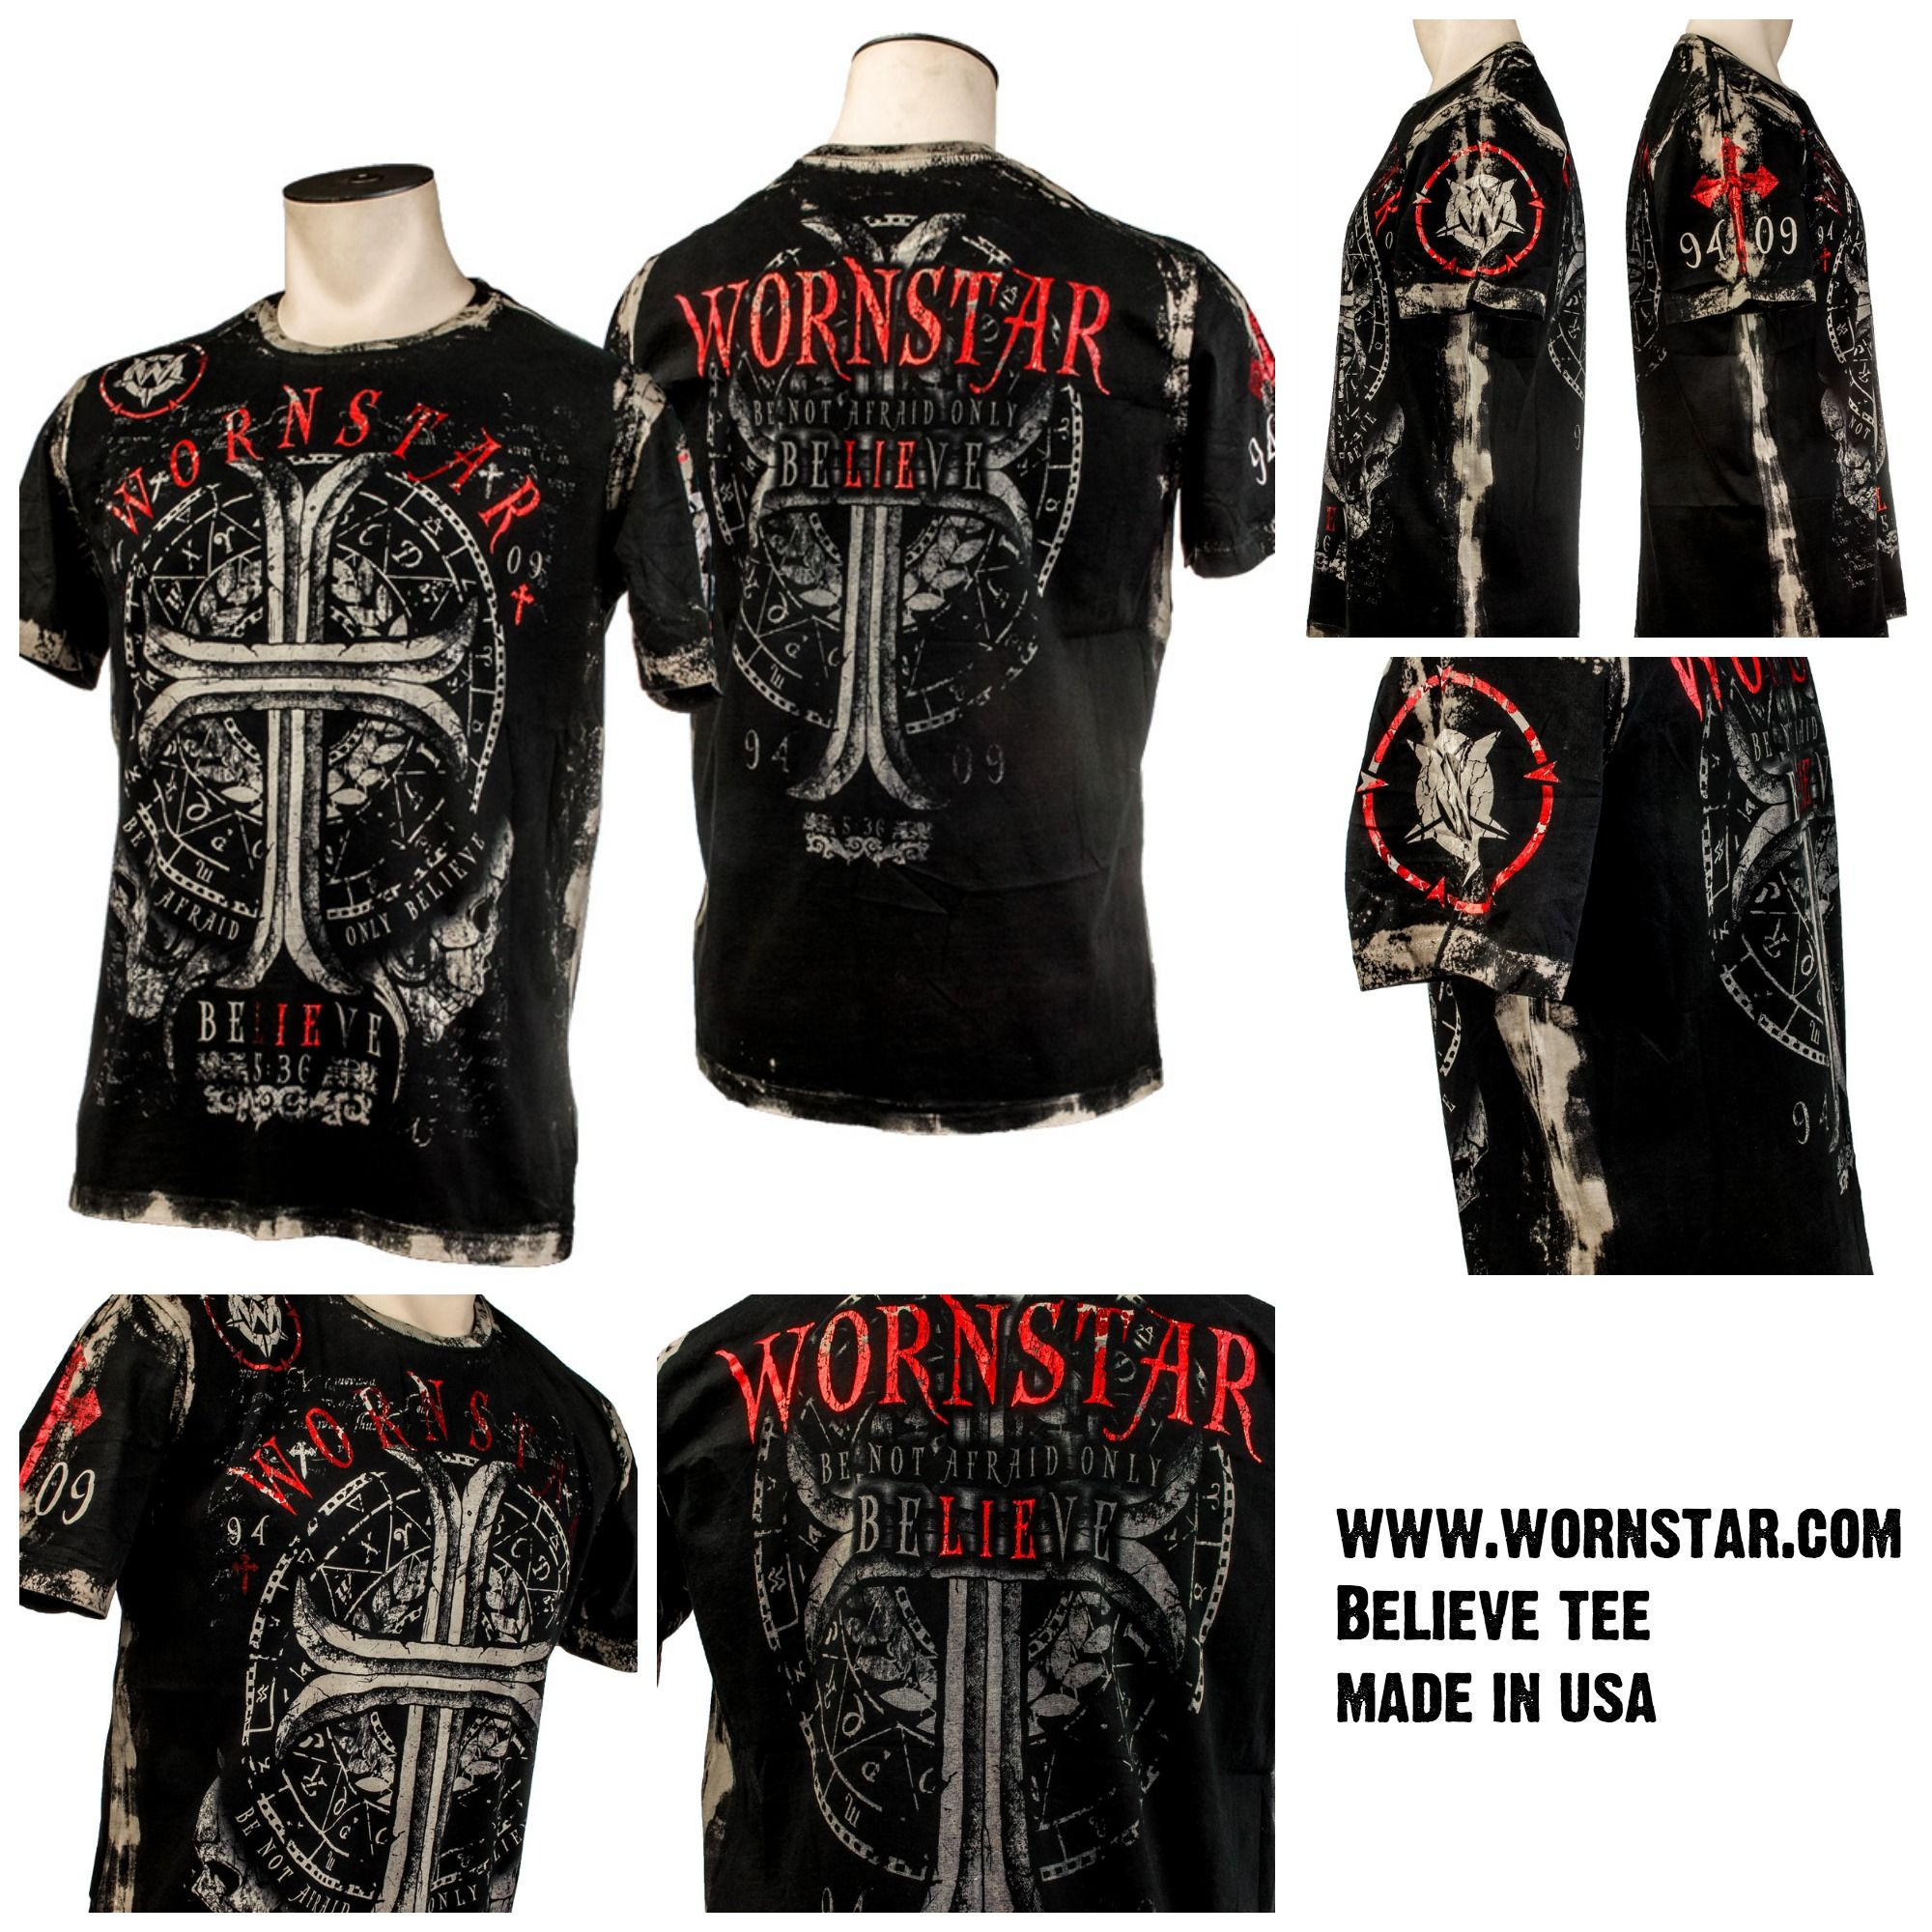 Believe Tee https://www.wornstar.com/collections/mens-collection/products/believe-tee • Made in USA • 100% pre-washed cotton soft t-shirt • Finished with shiny distressed red foil